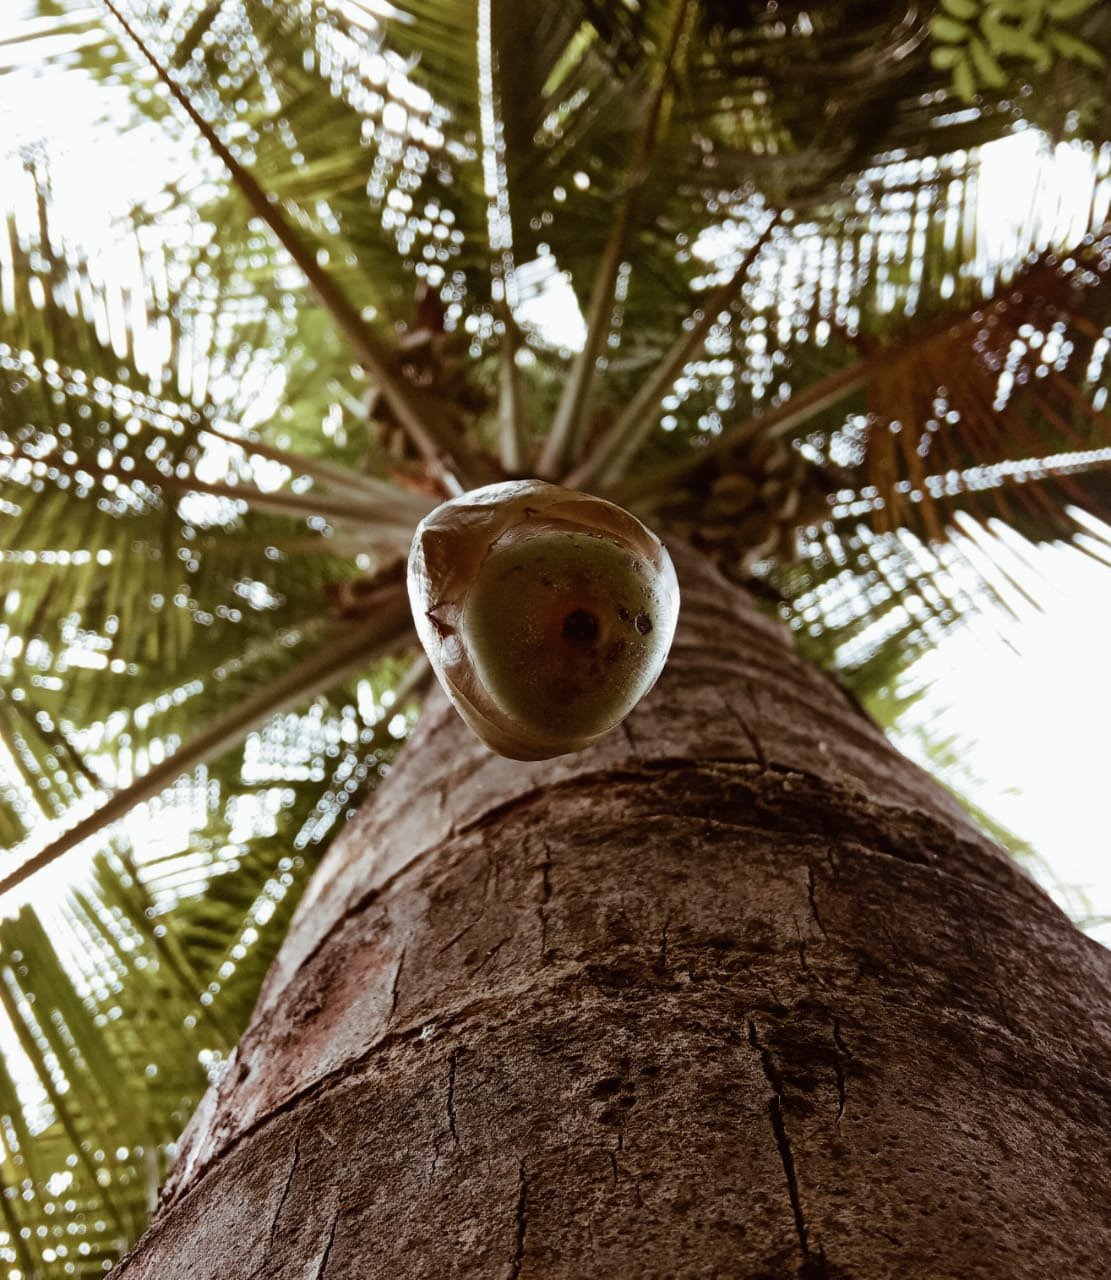 Coconut falling from tree